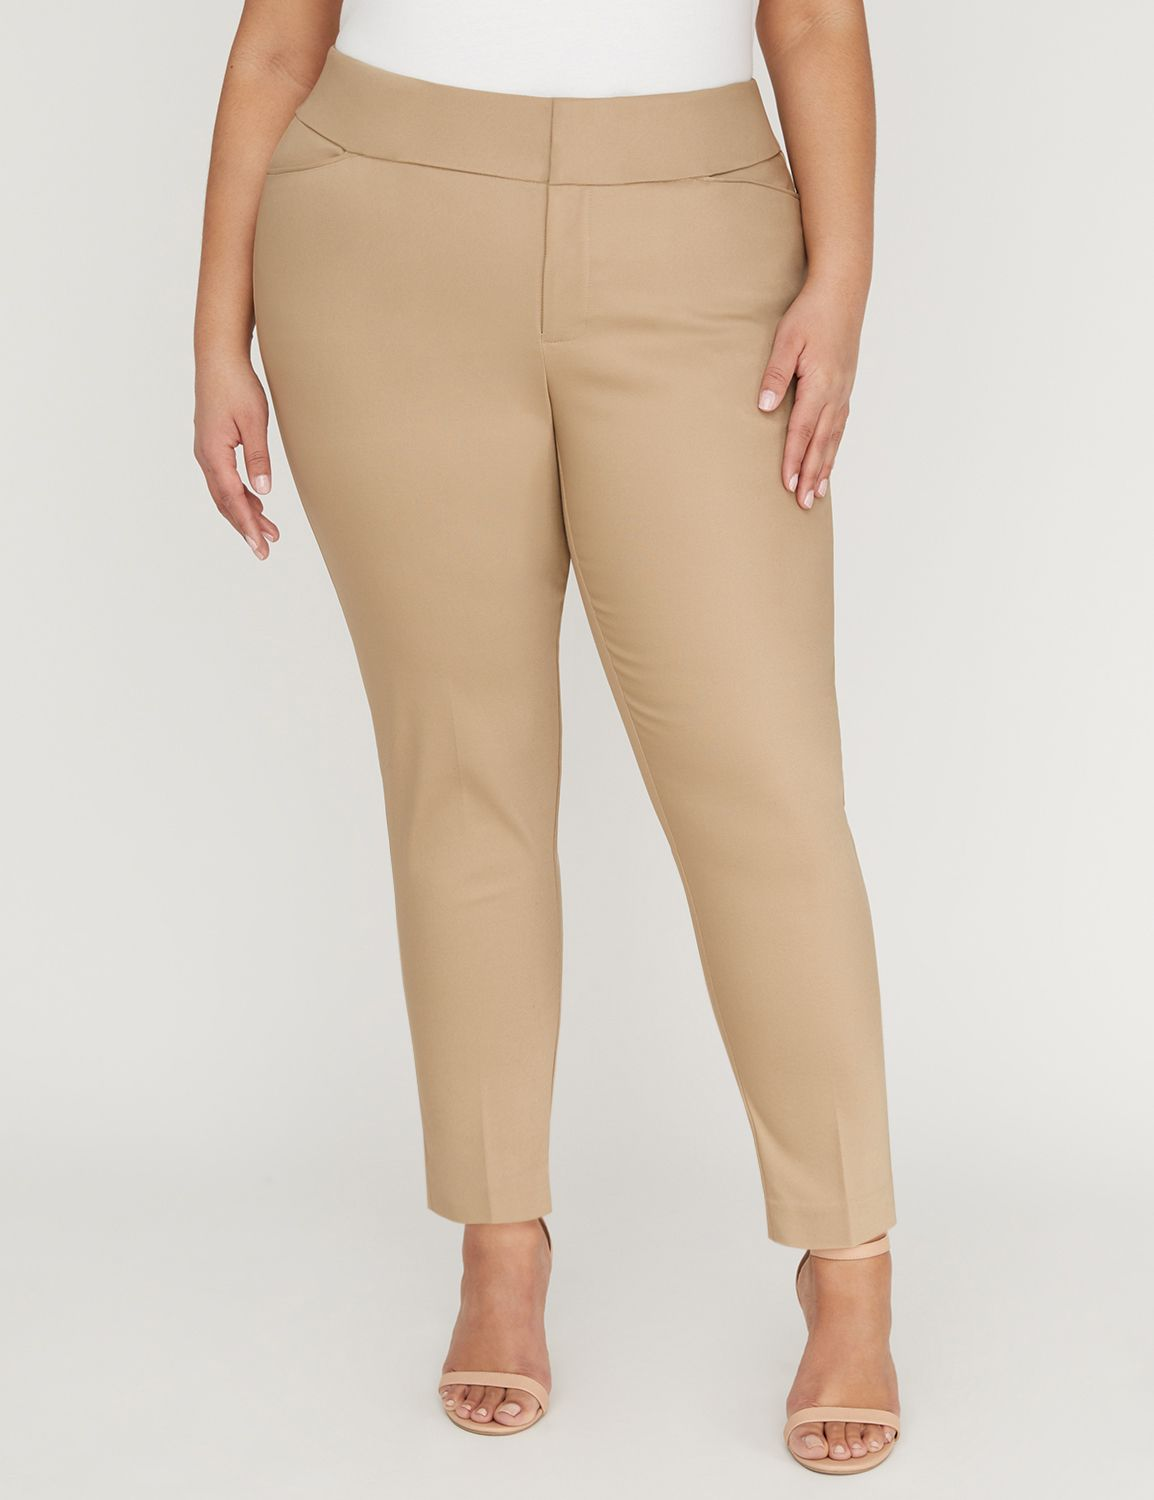 Updated Modern Stretch Ankle Pant 1087775 MODERN STRETCH WIDE WAISTBA MP-300097622